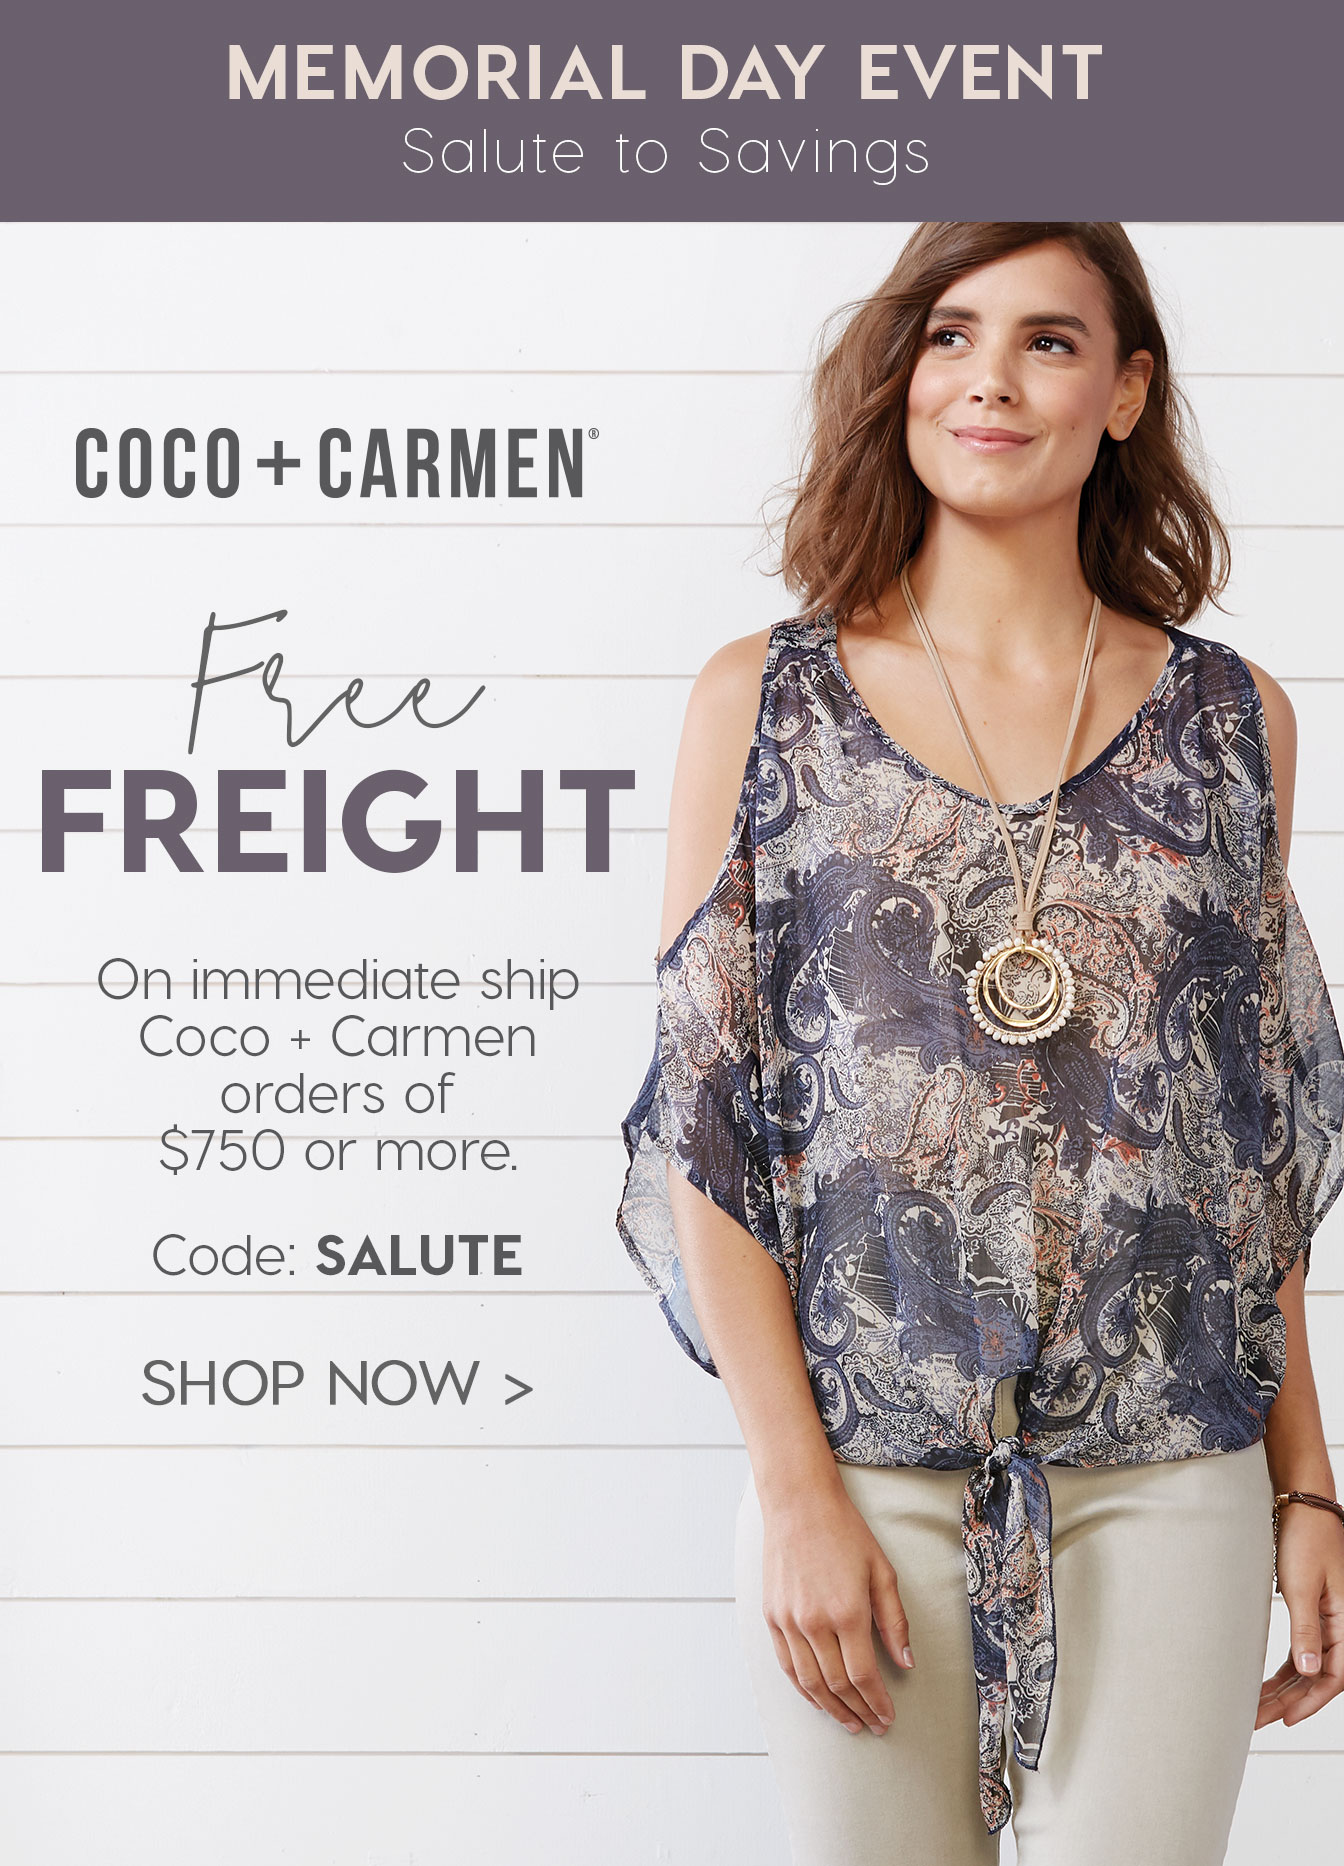 Coco + Carmen Free Freight Offer